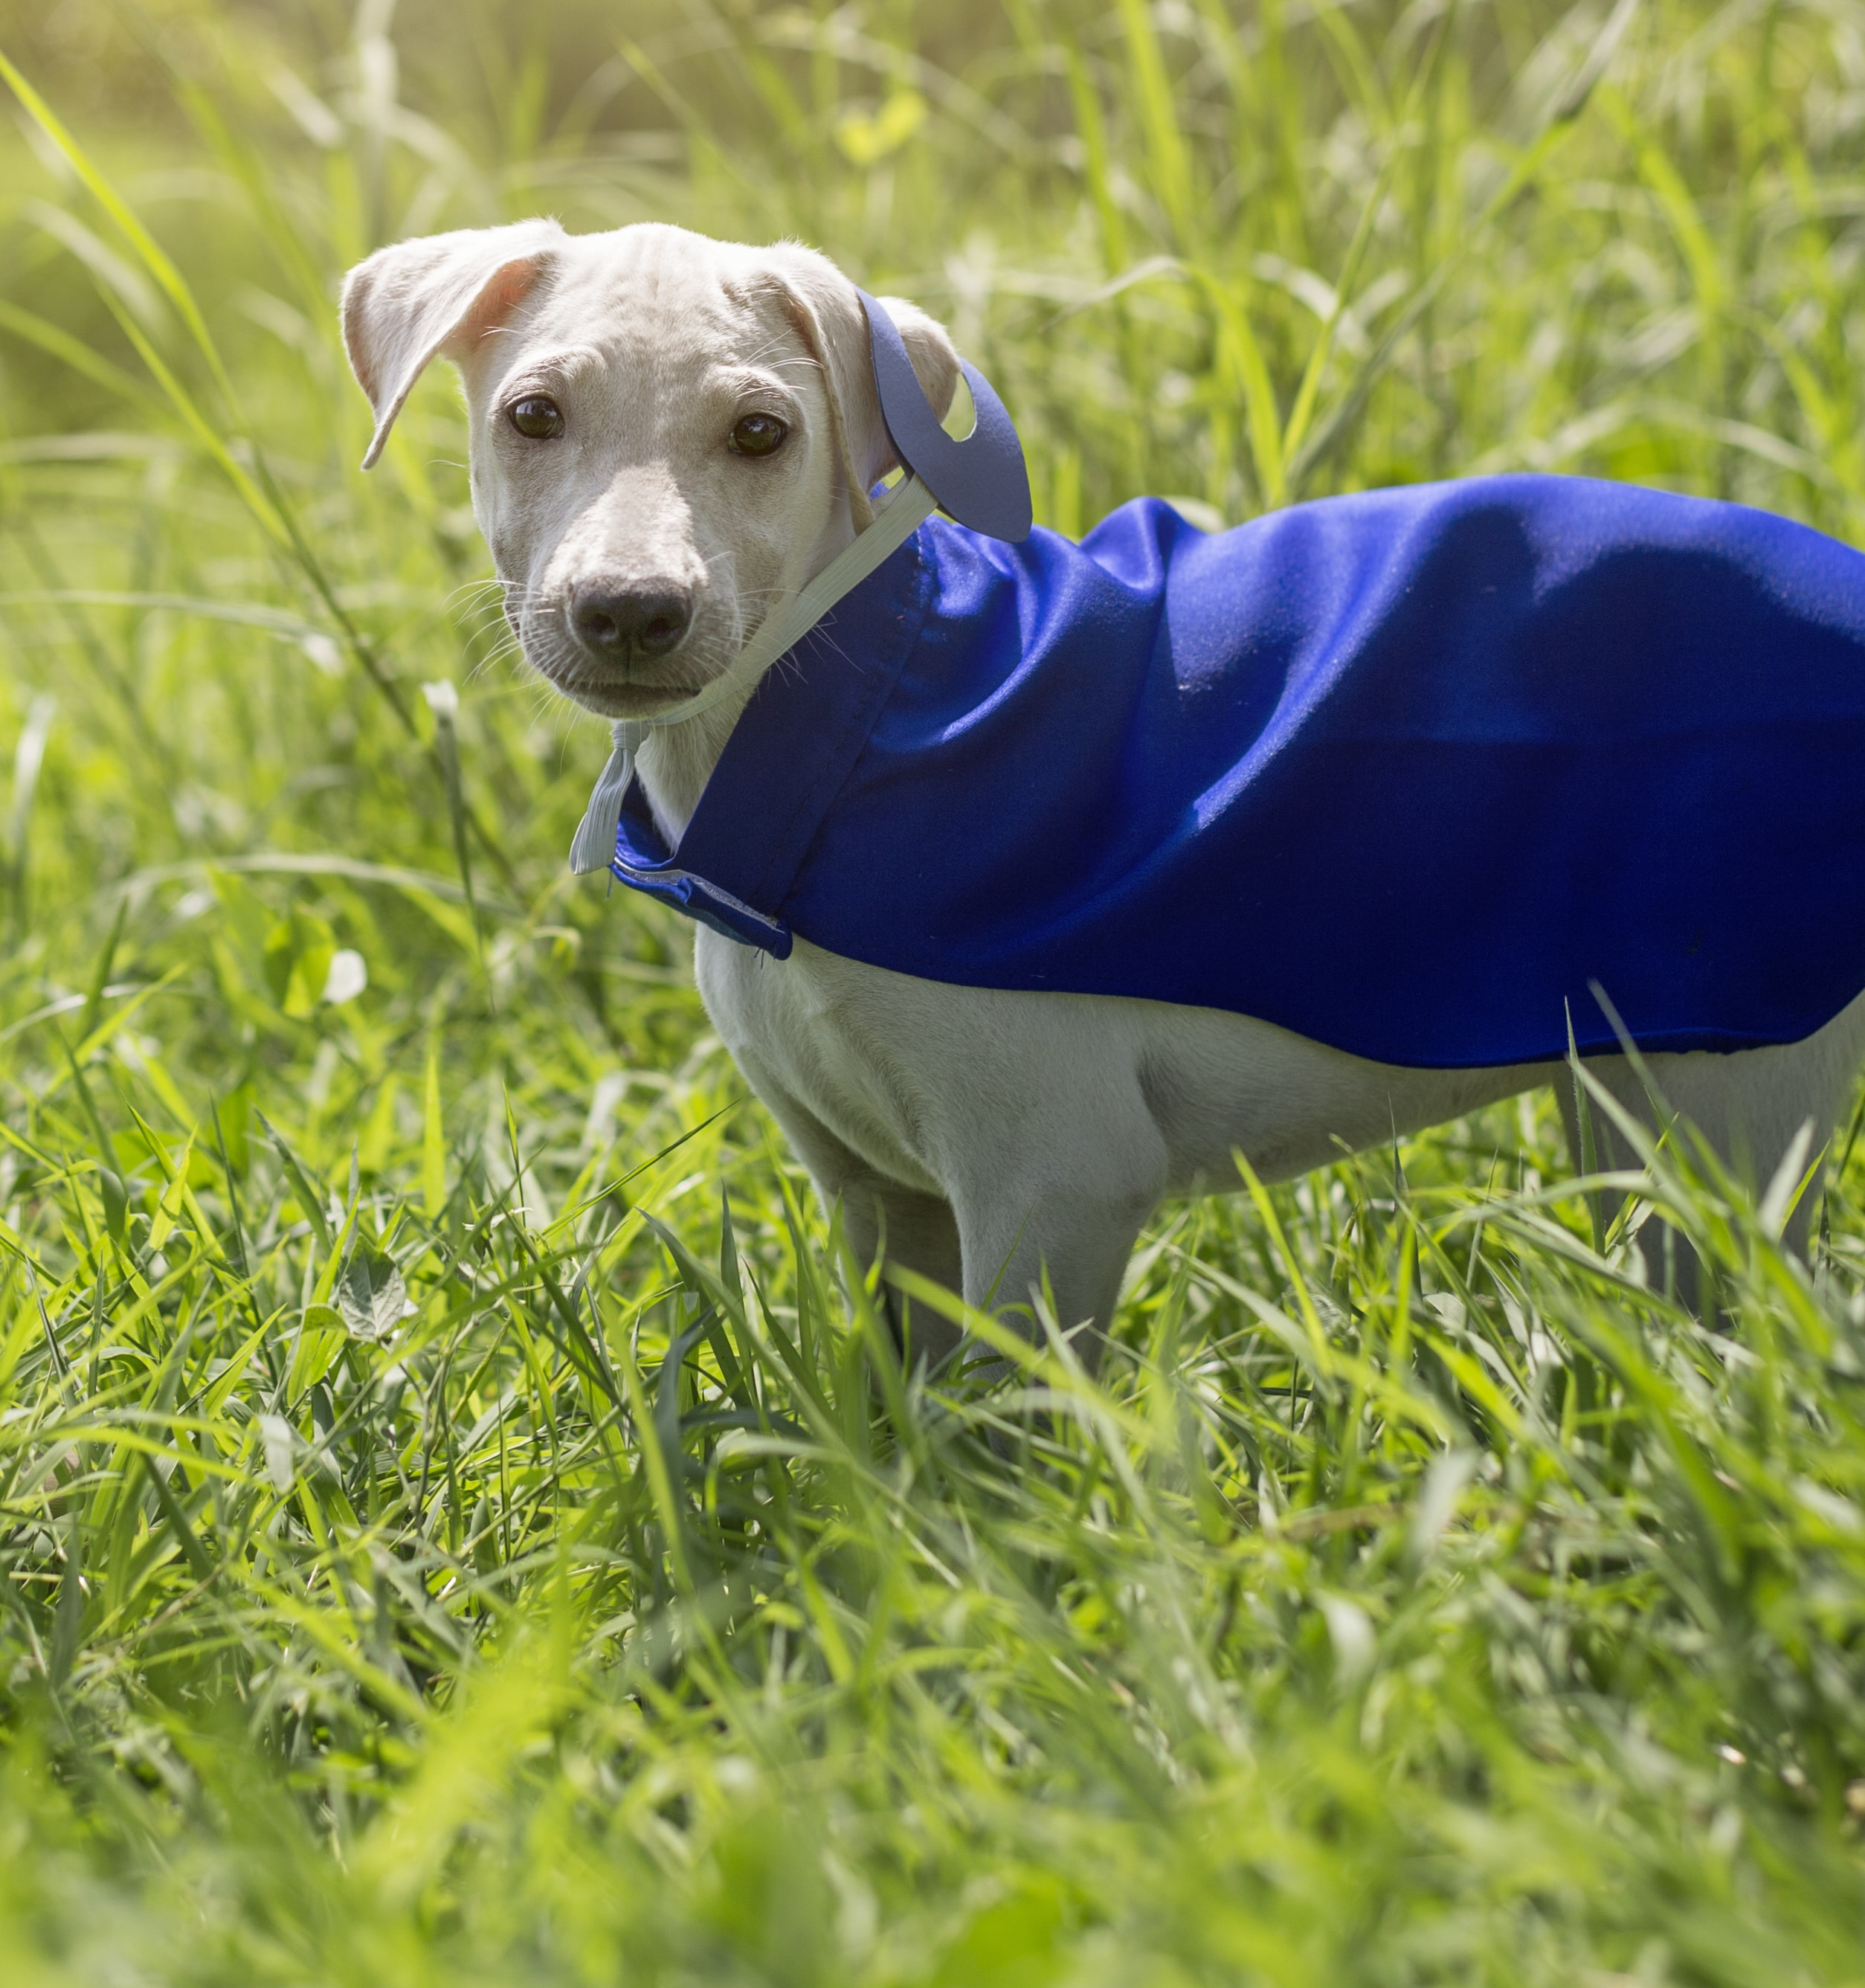 short-coated dog with blue cape on grass field